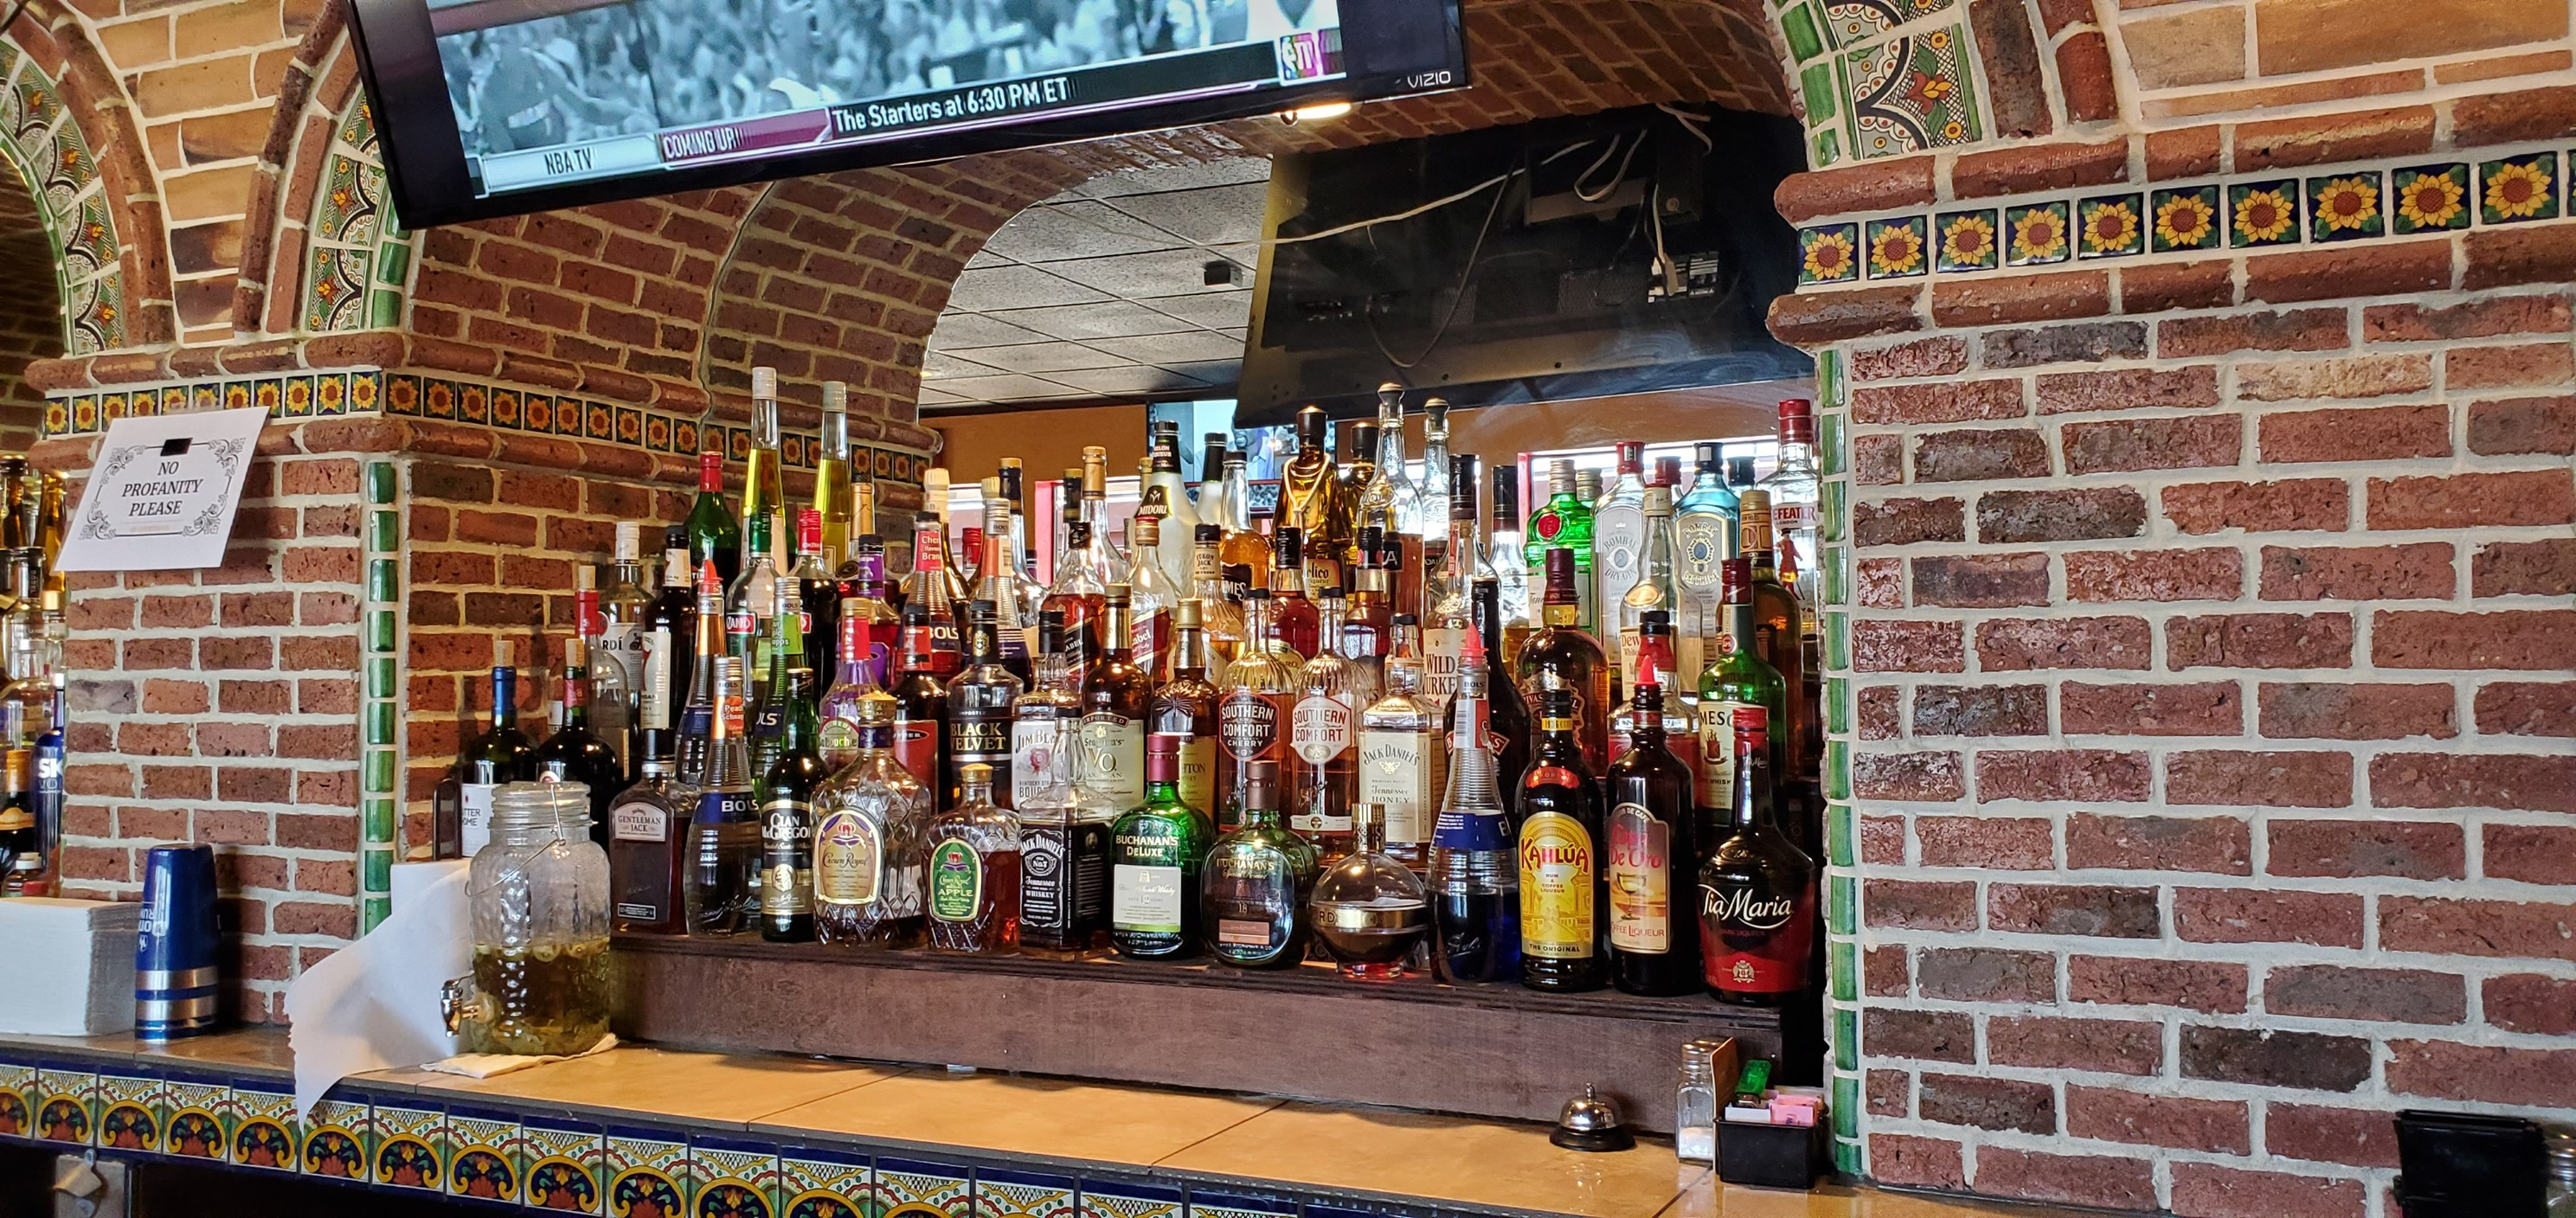 shelves of liquor on the wall behind the bar.